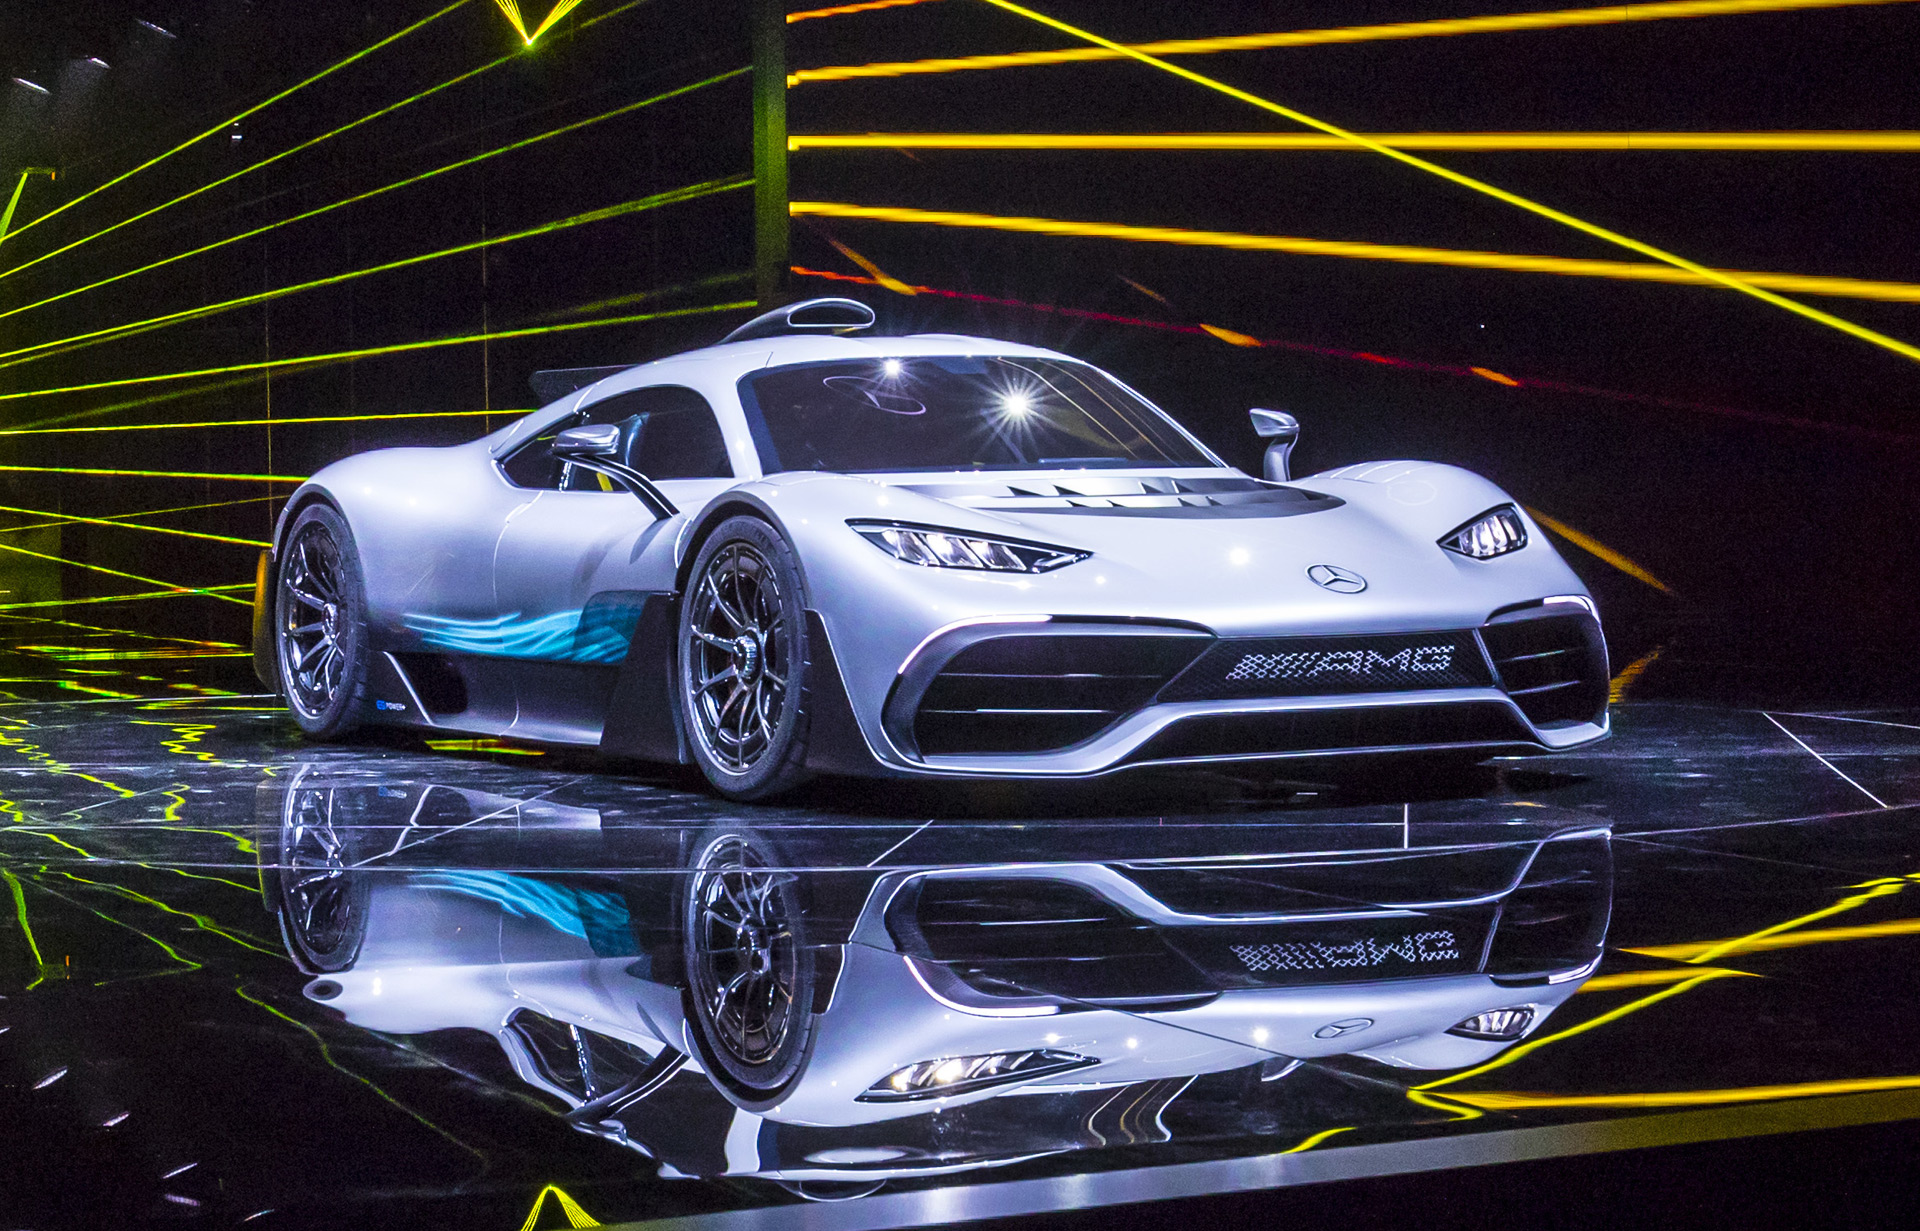 5 Things You Need To Know About The Mercedes Amg Project One